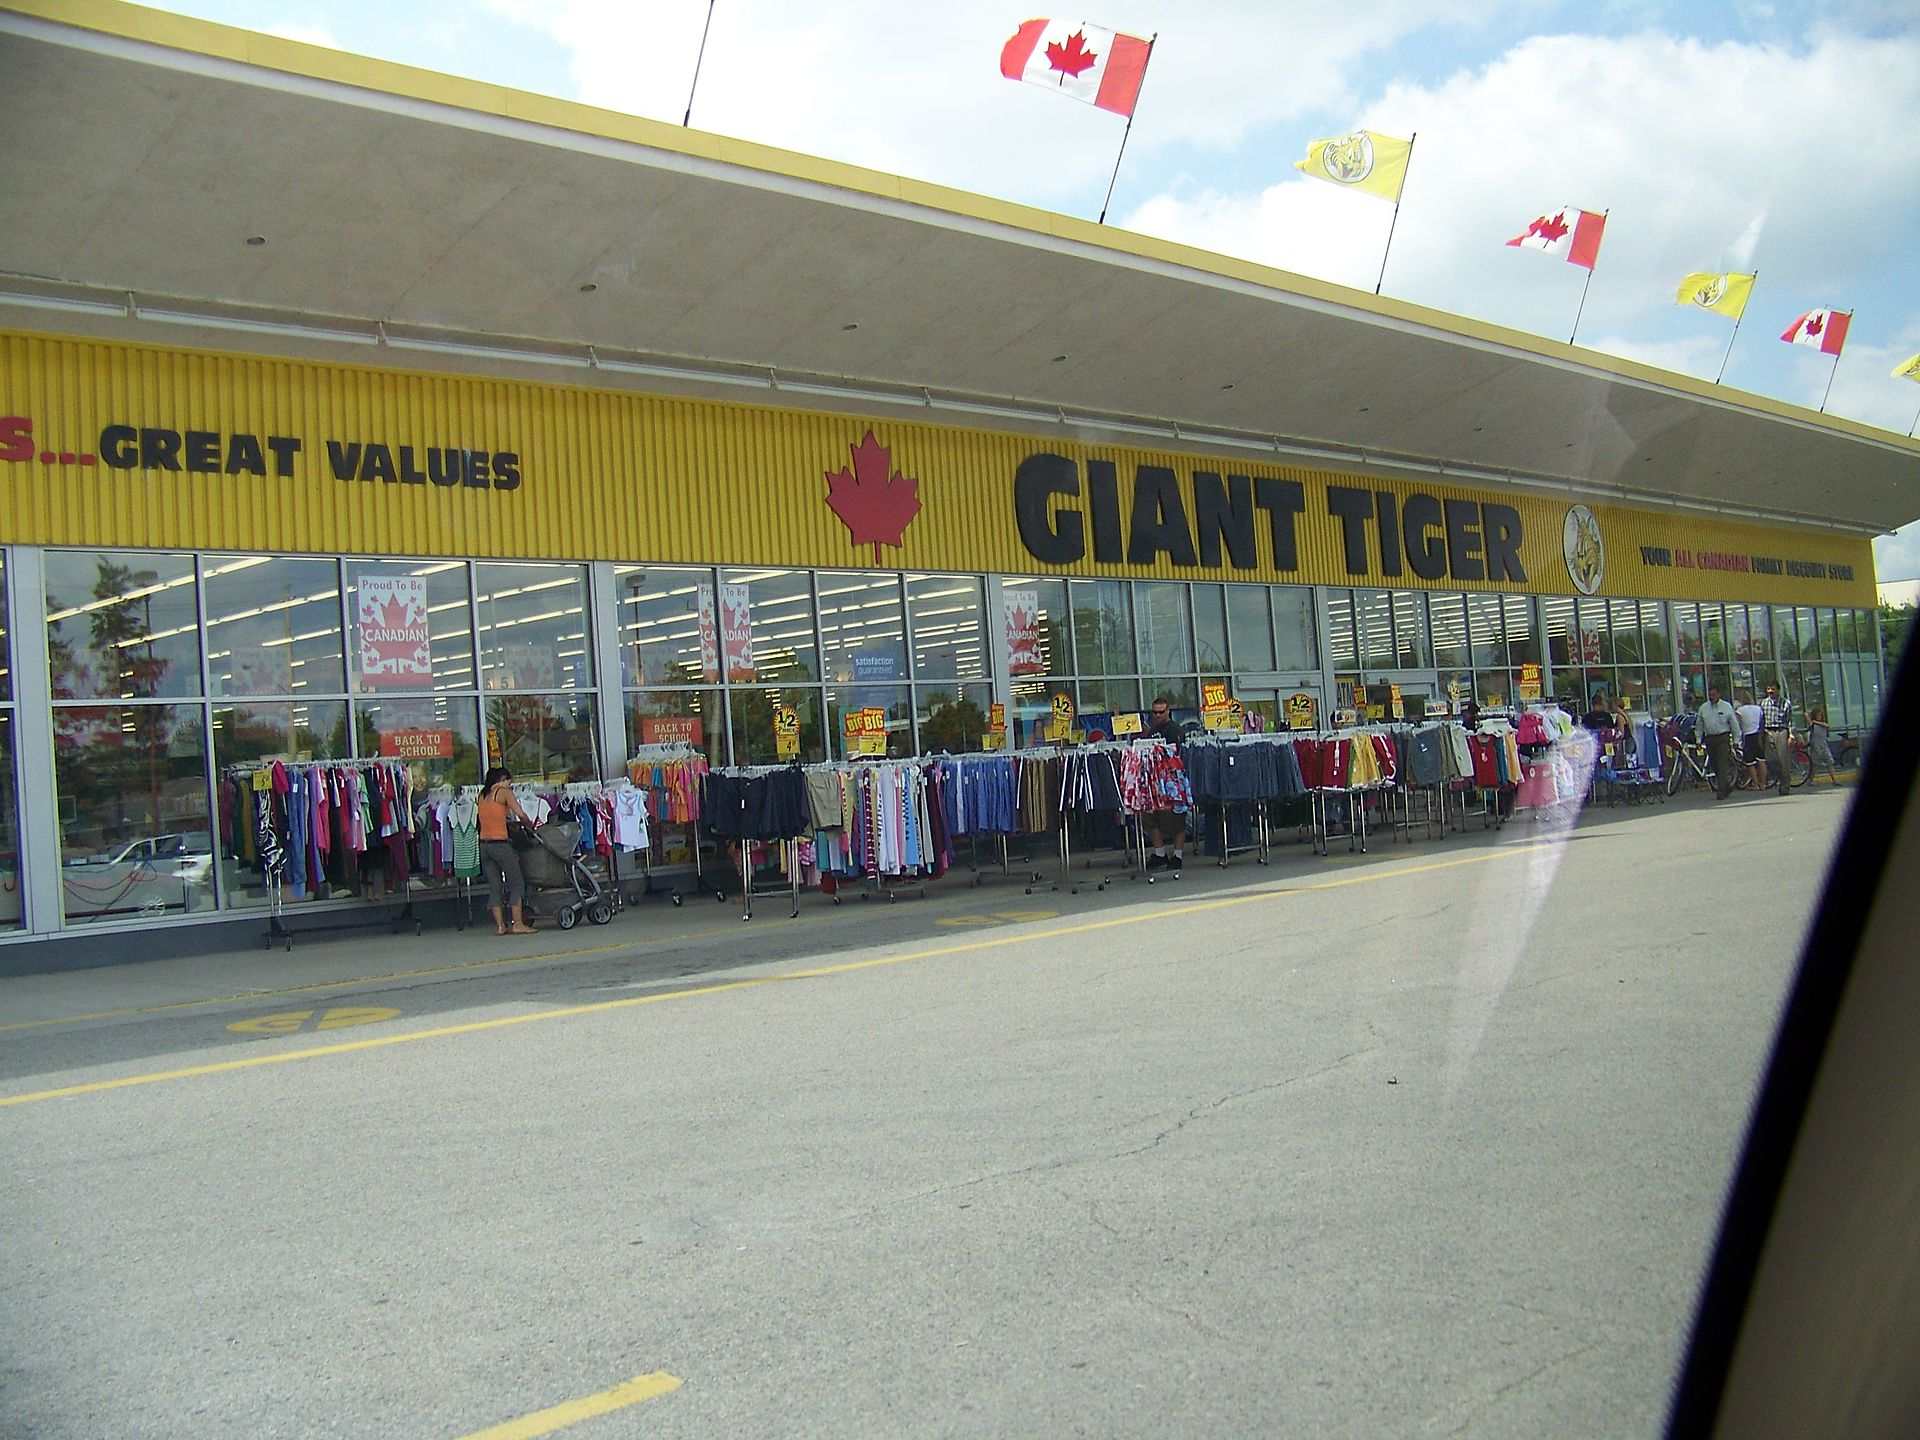 Store Banne Vehicule Giant Tiger Wikipedia